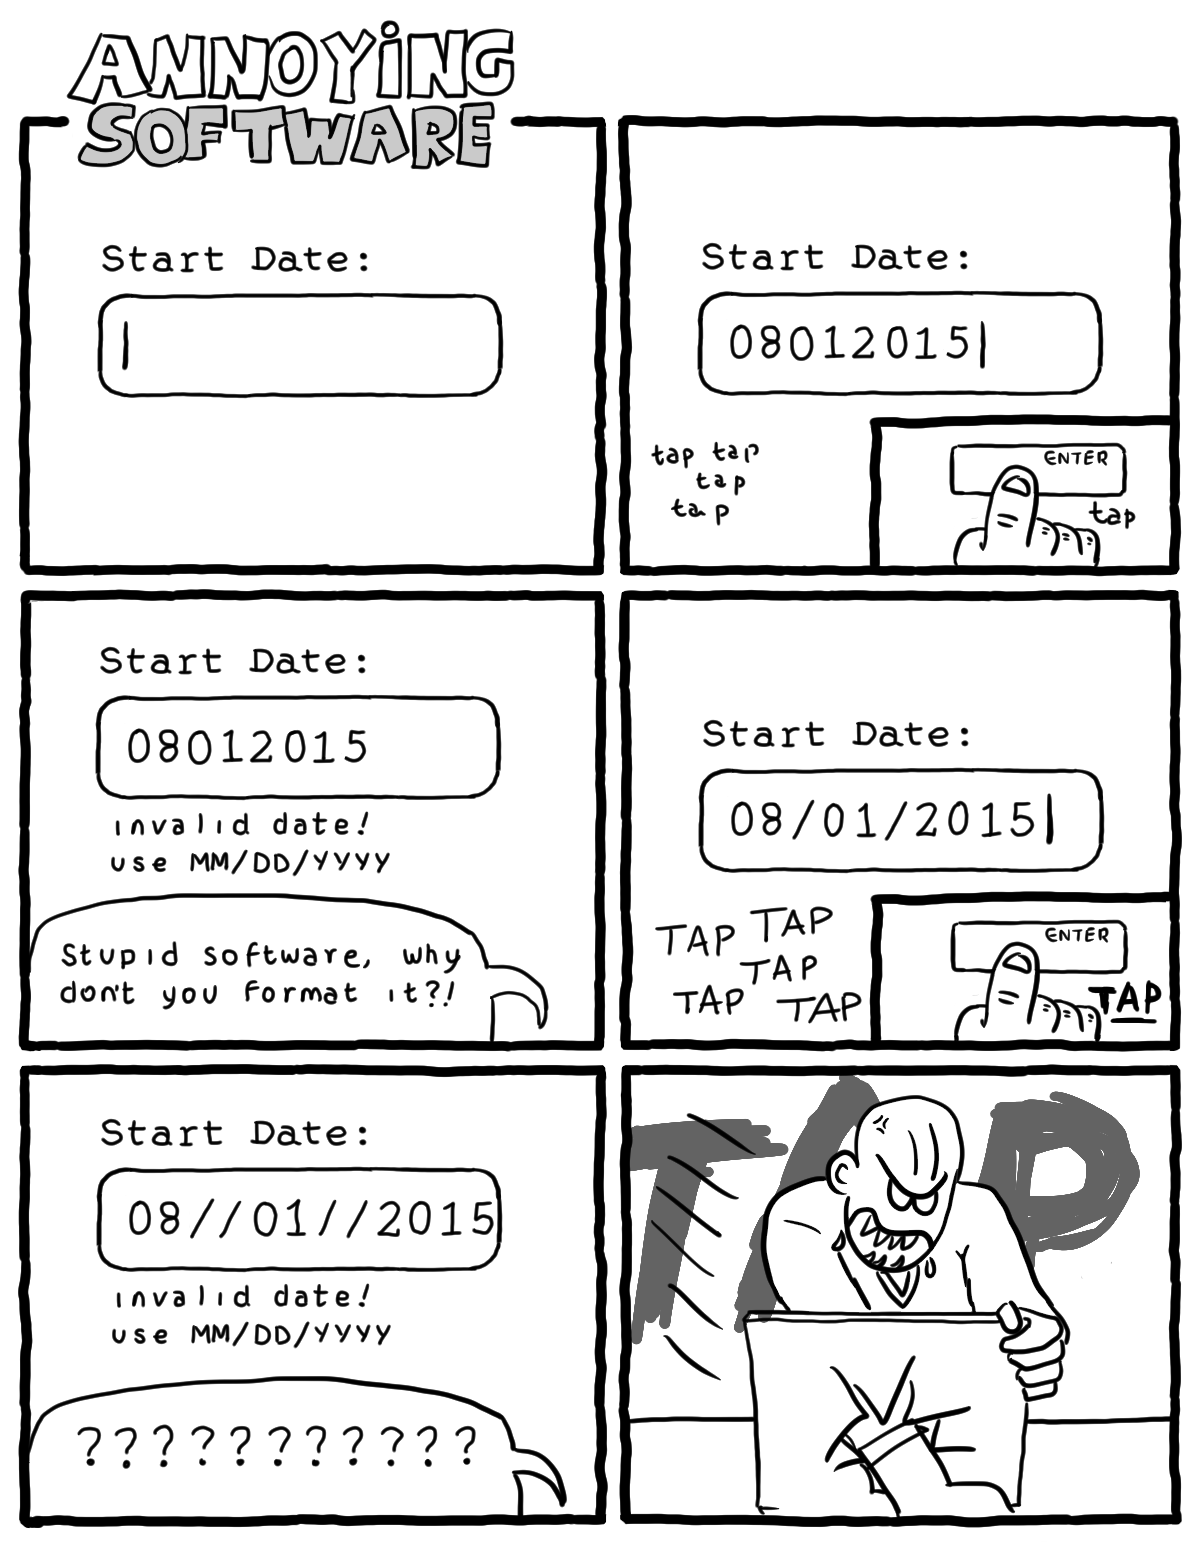 annoying software 3 - the date situation geek comic